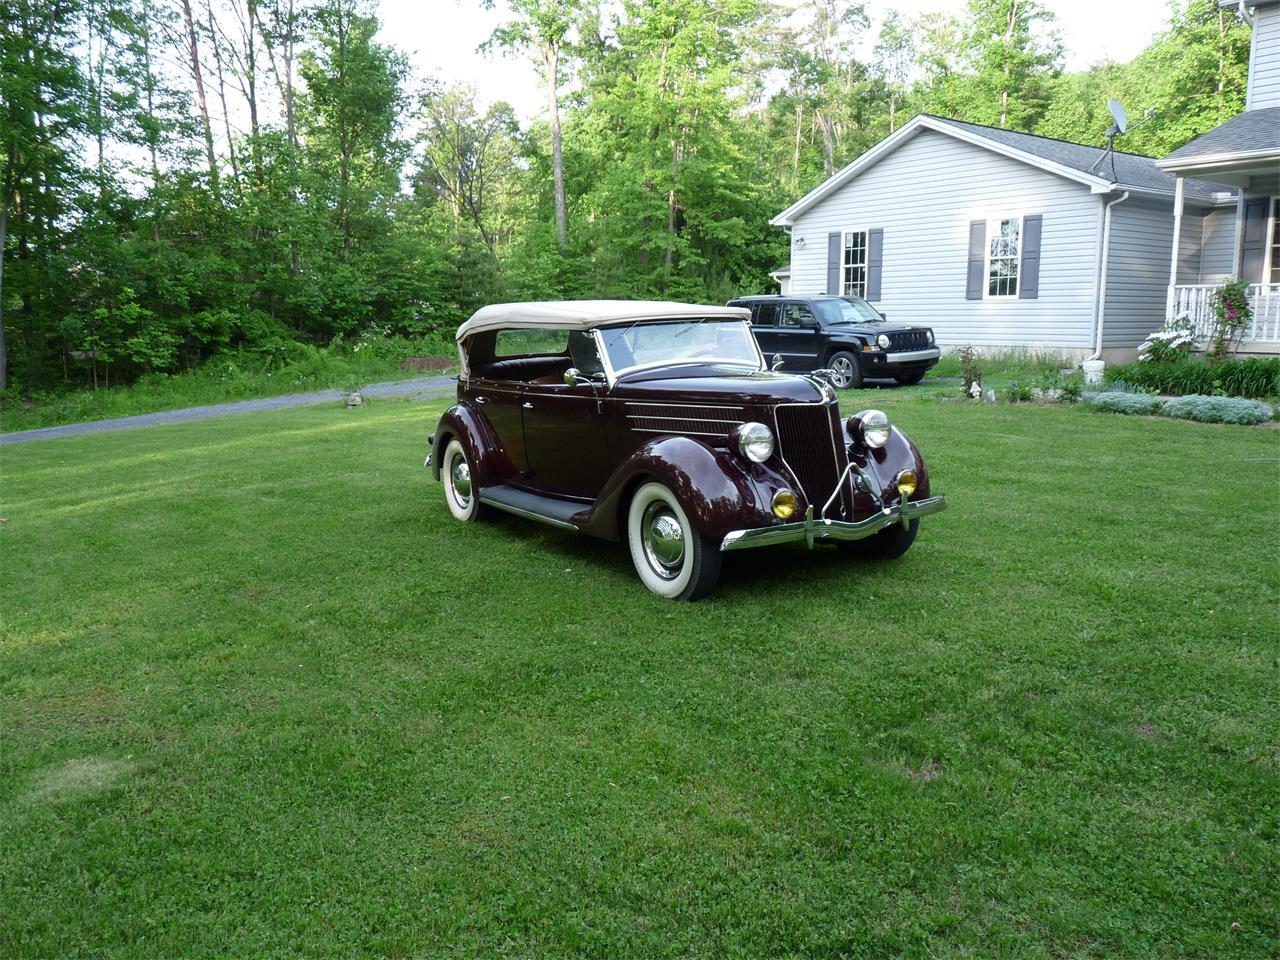 Large Picture of '36 Phaeton located in Belleville Pennsylvania - $40,900.00 Offered by a Private Seller - BWBS